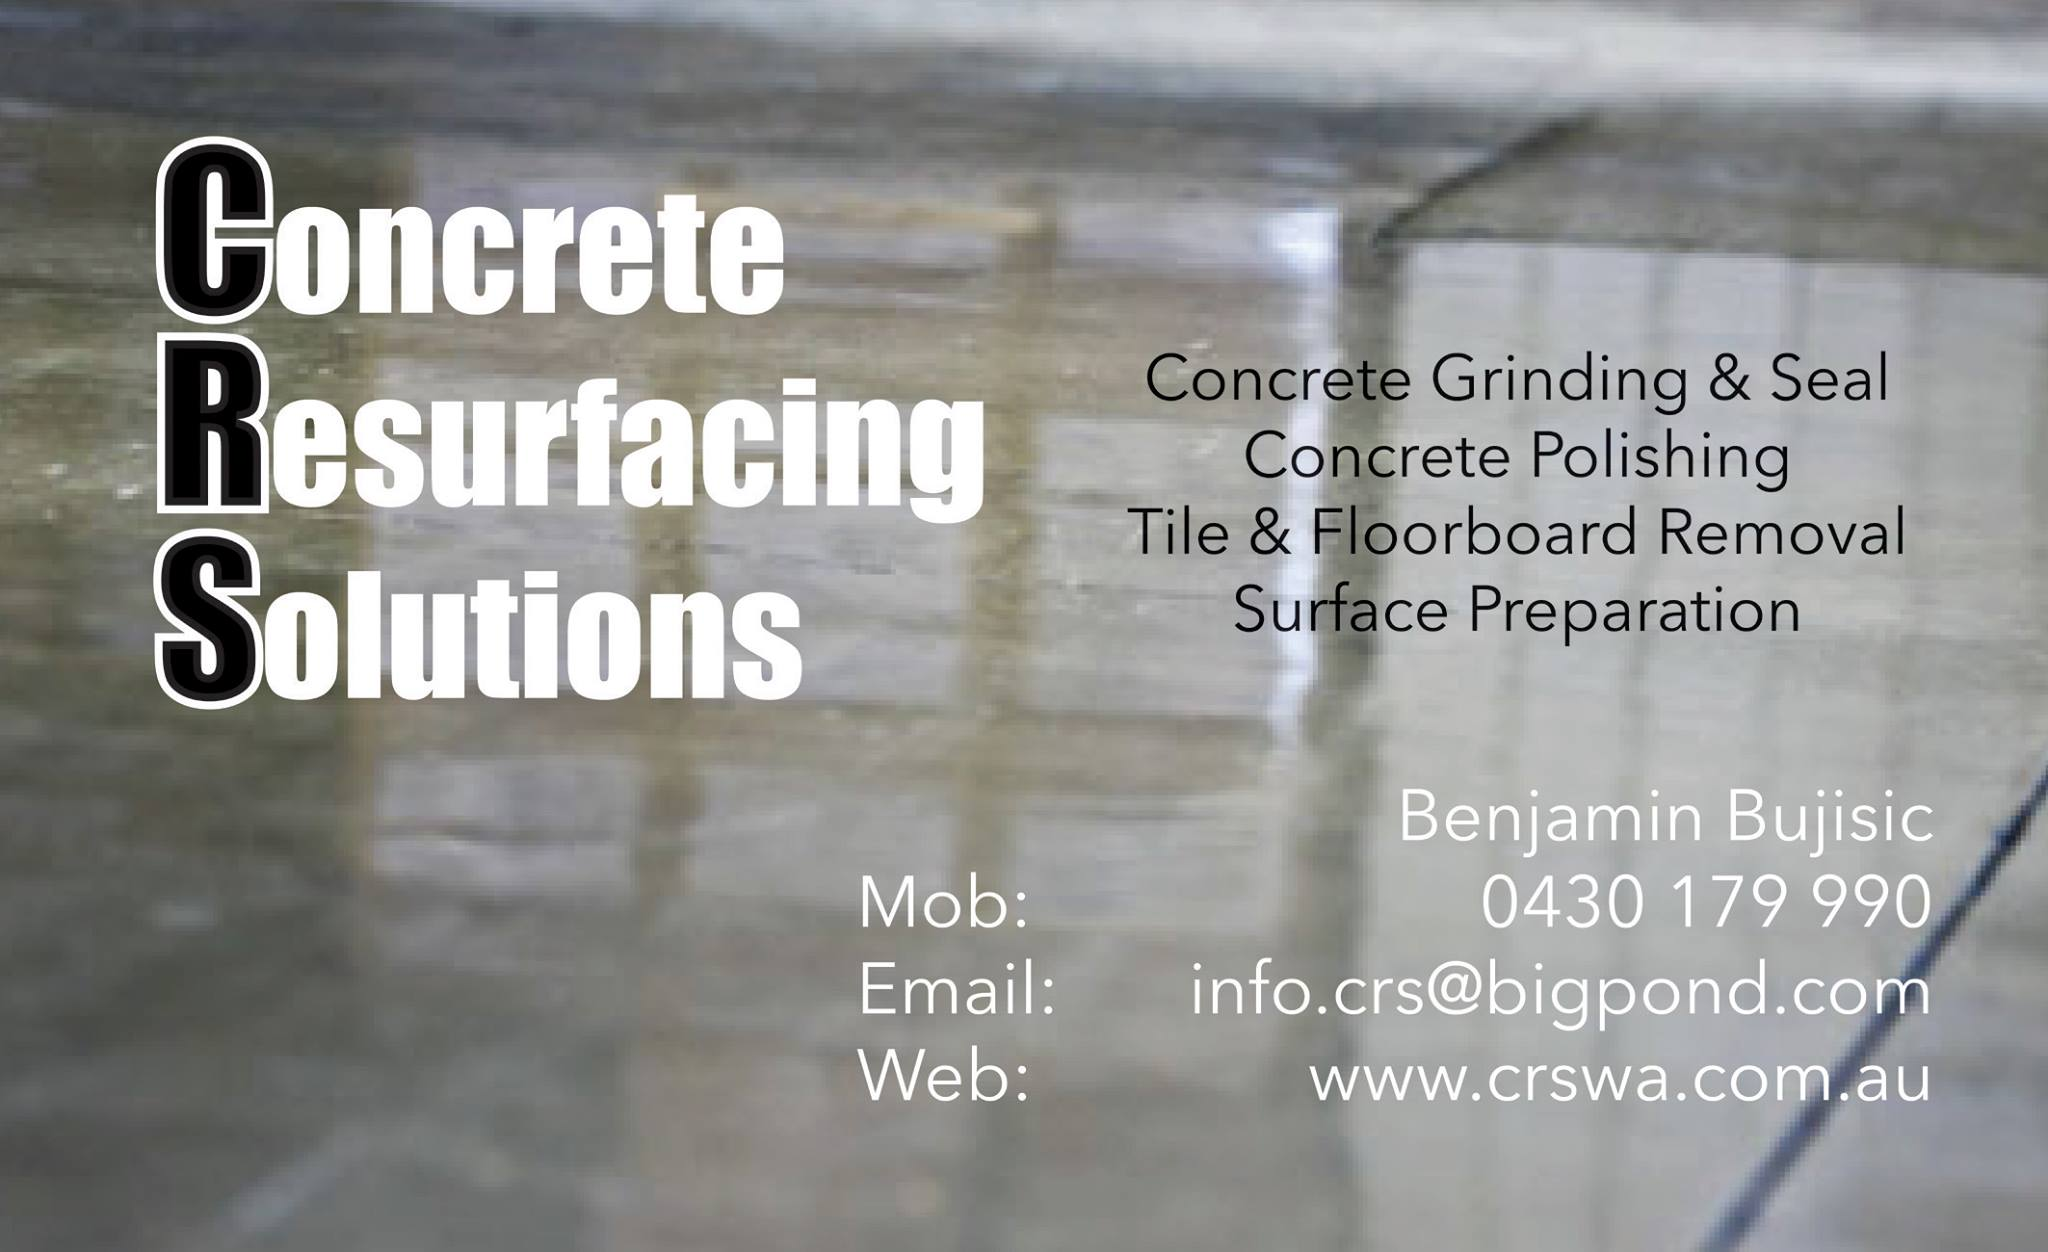 CRS Business Card